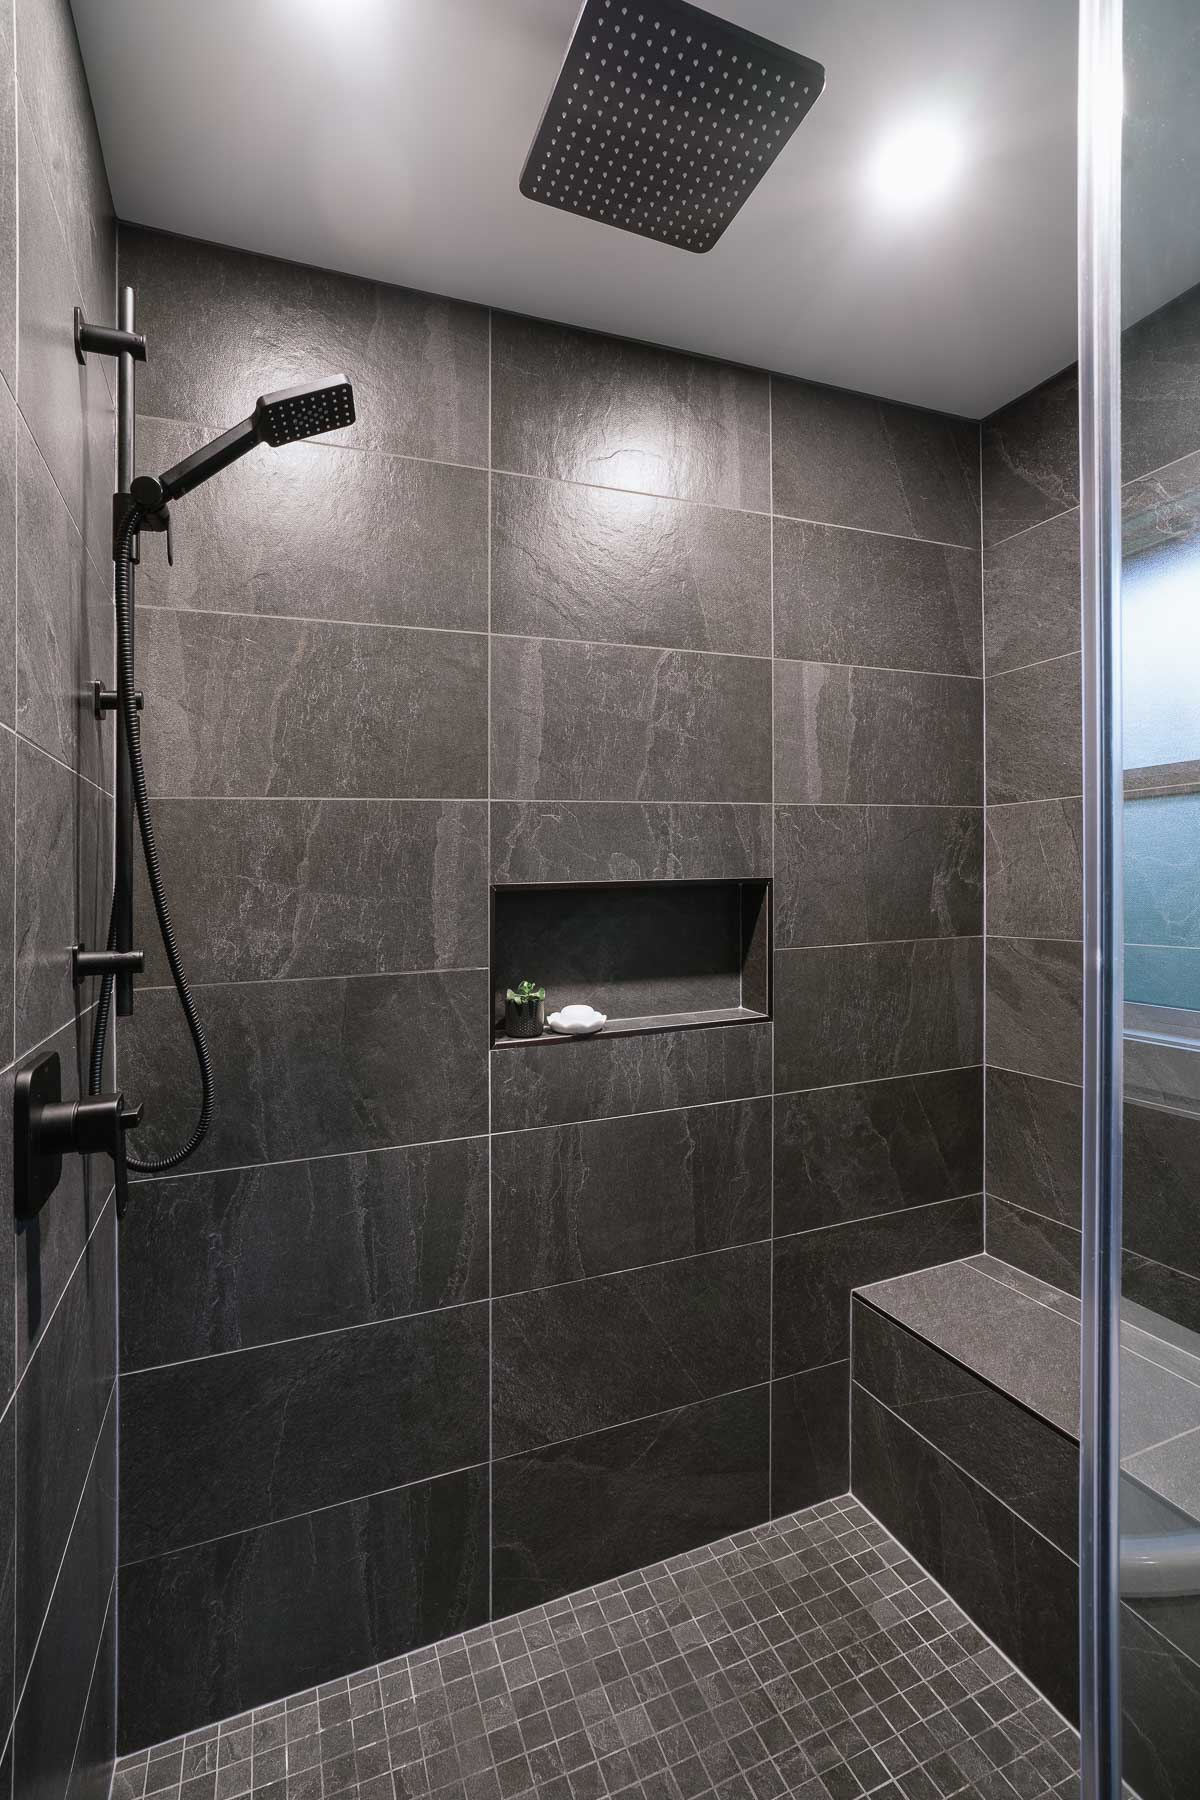 Black Tile Walk-In Shower